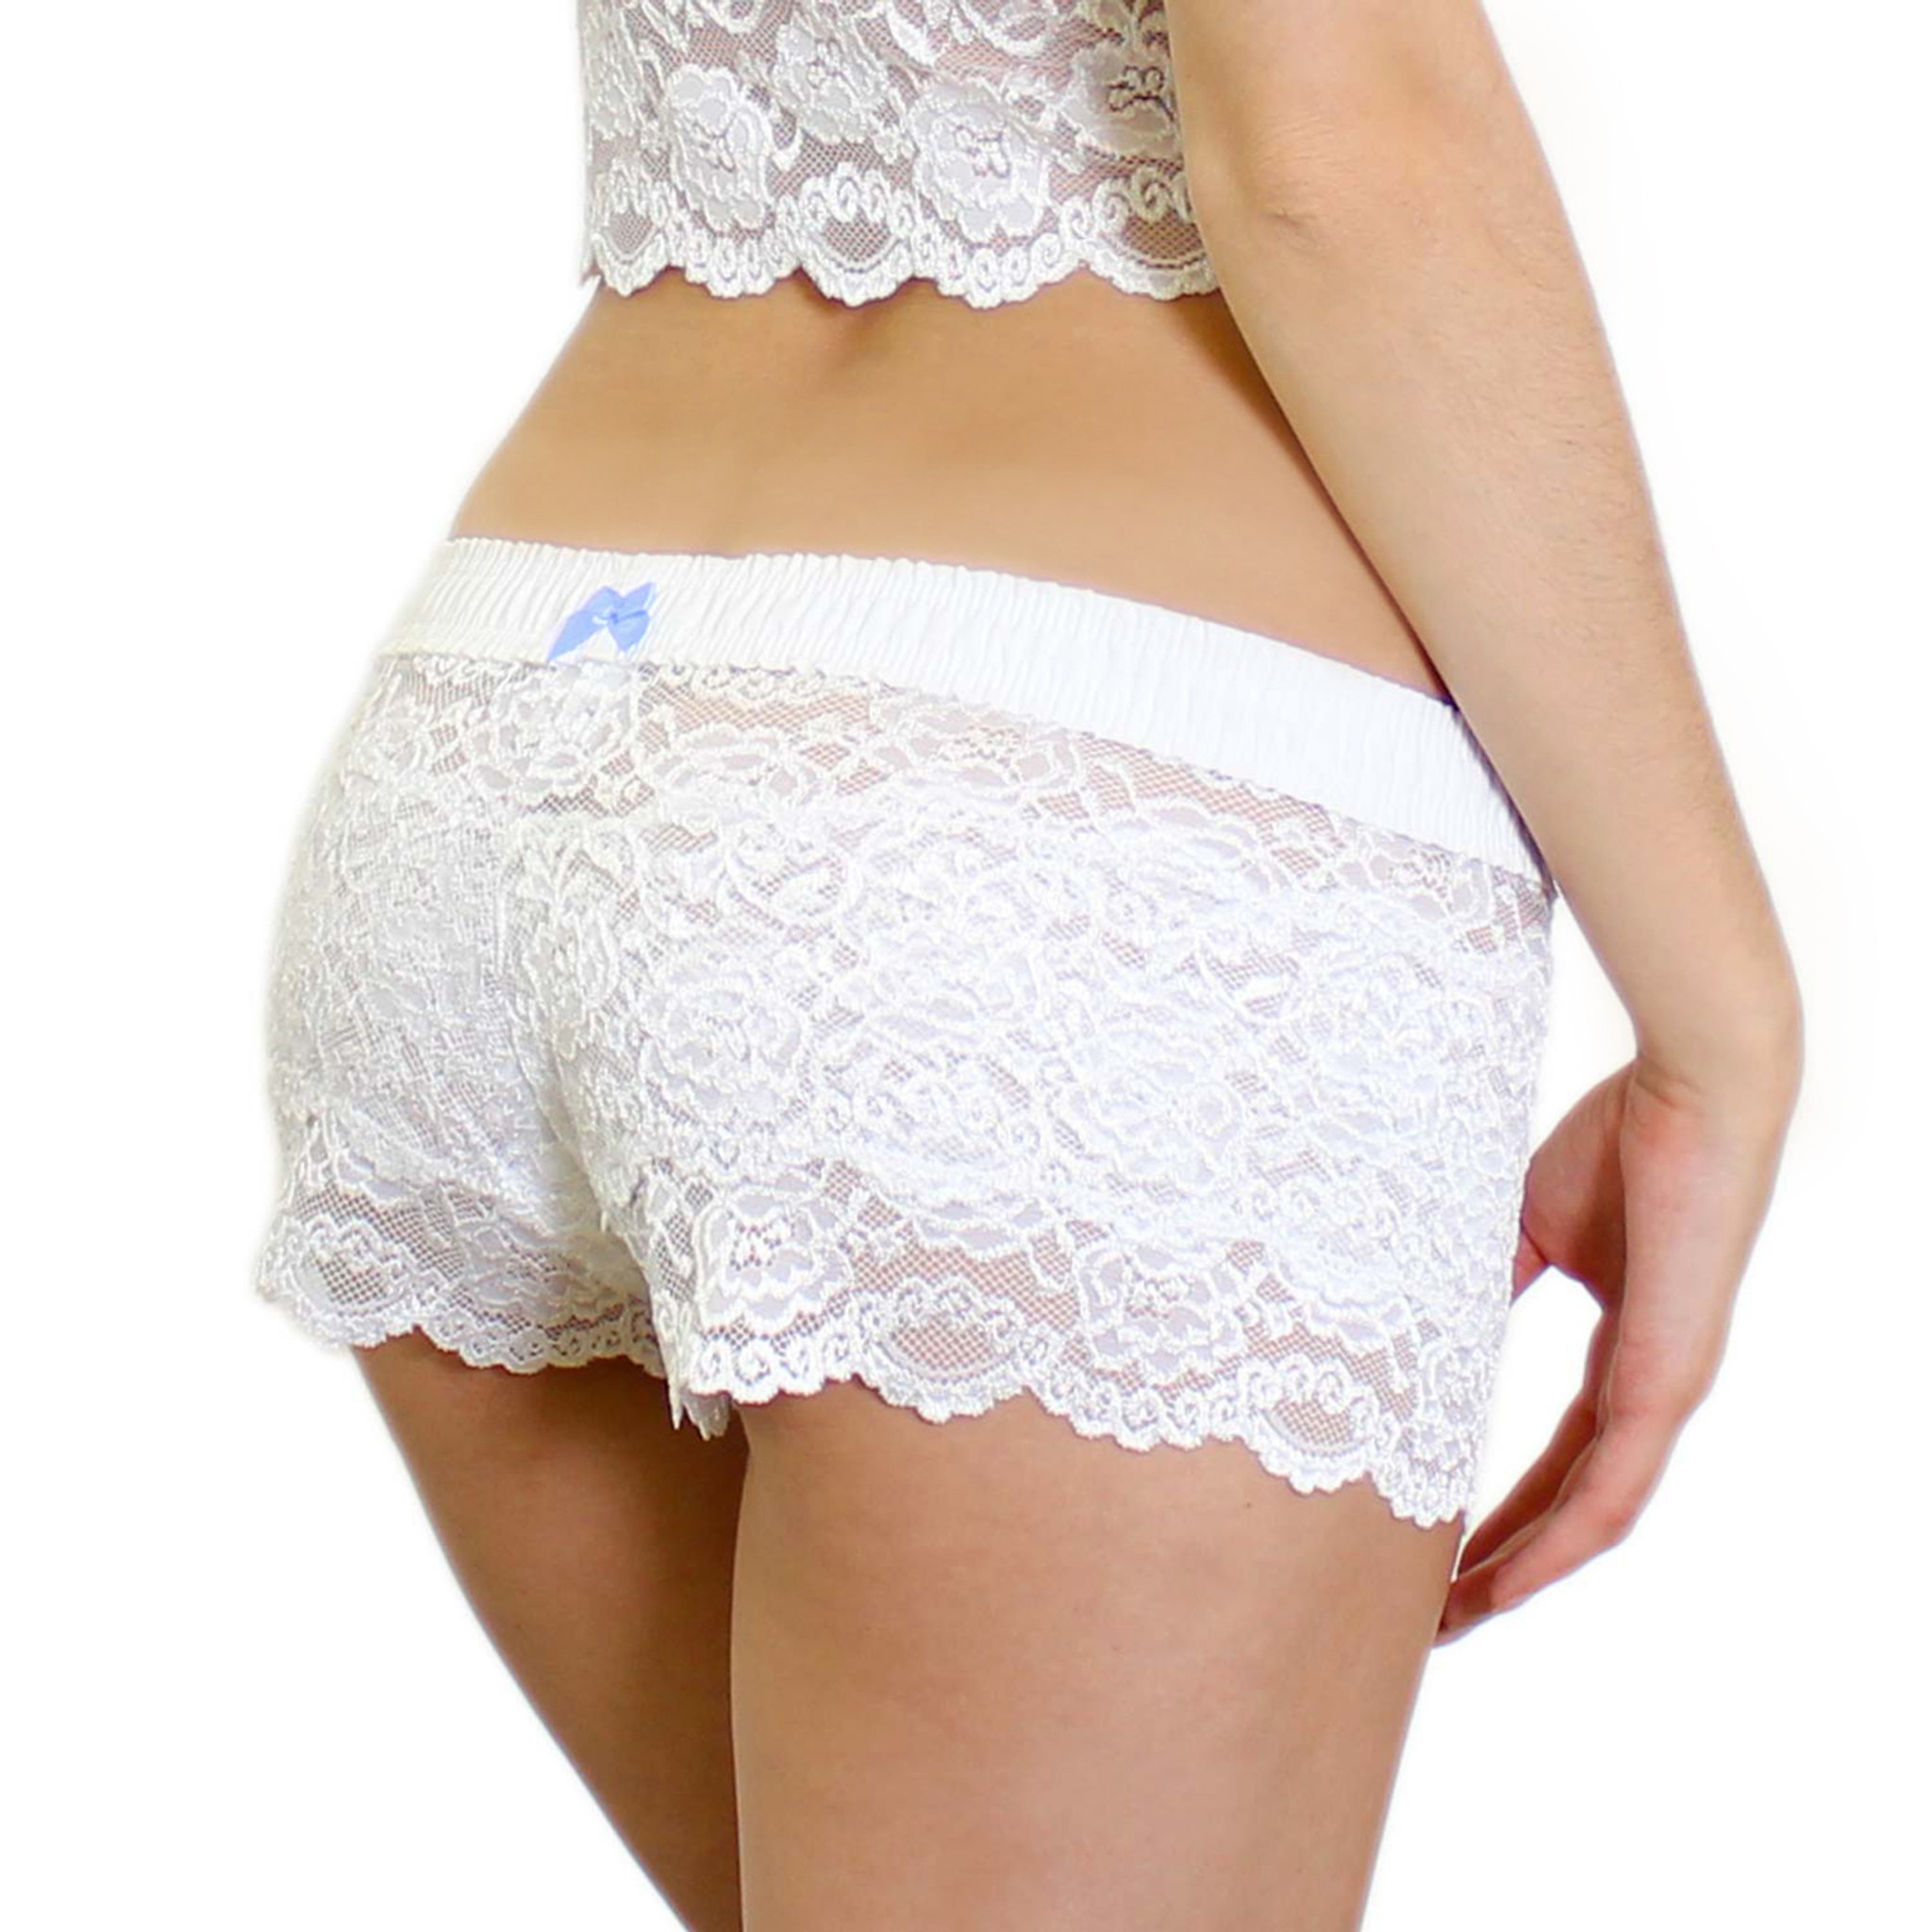 panties underwear knickers lingerie foxers white lace boxers white foxers band 4 stars